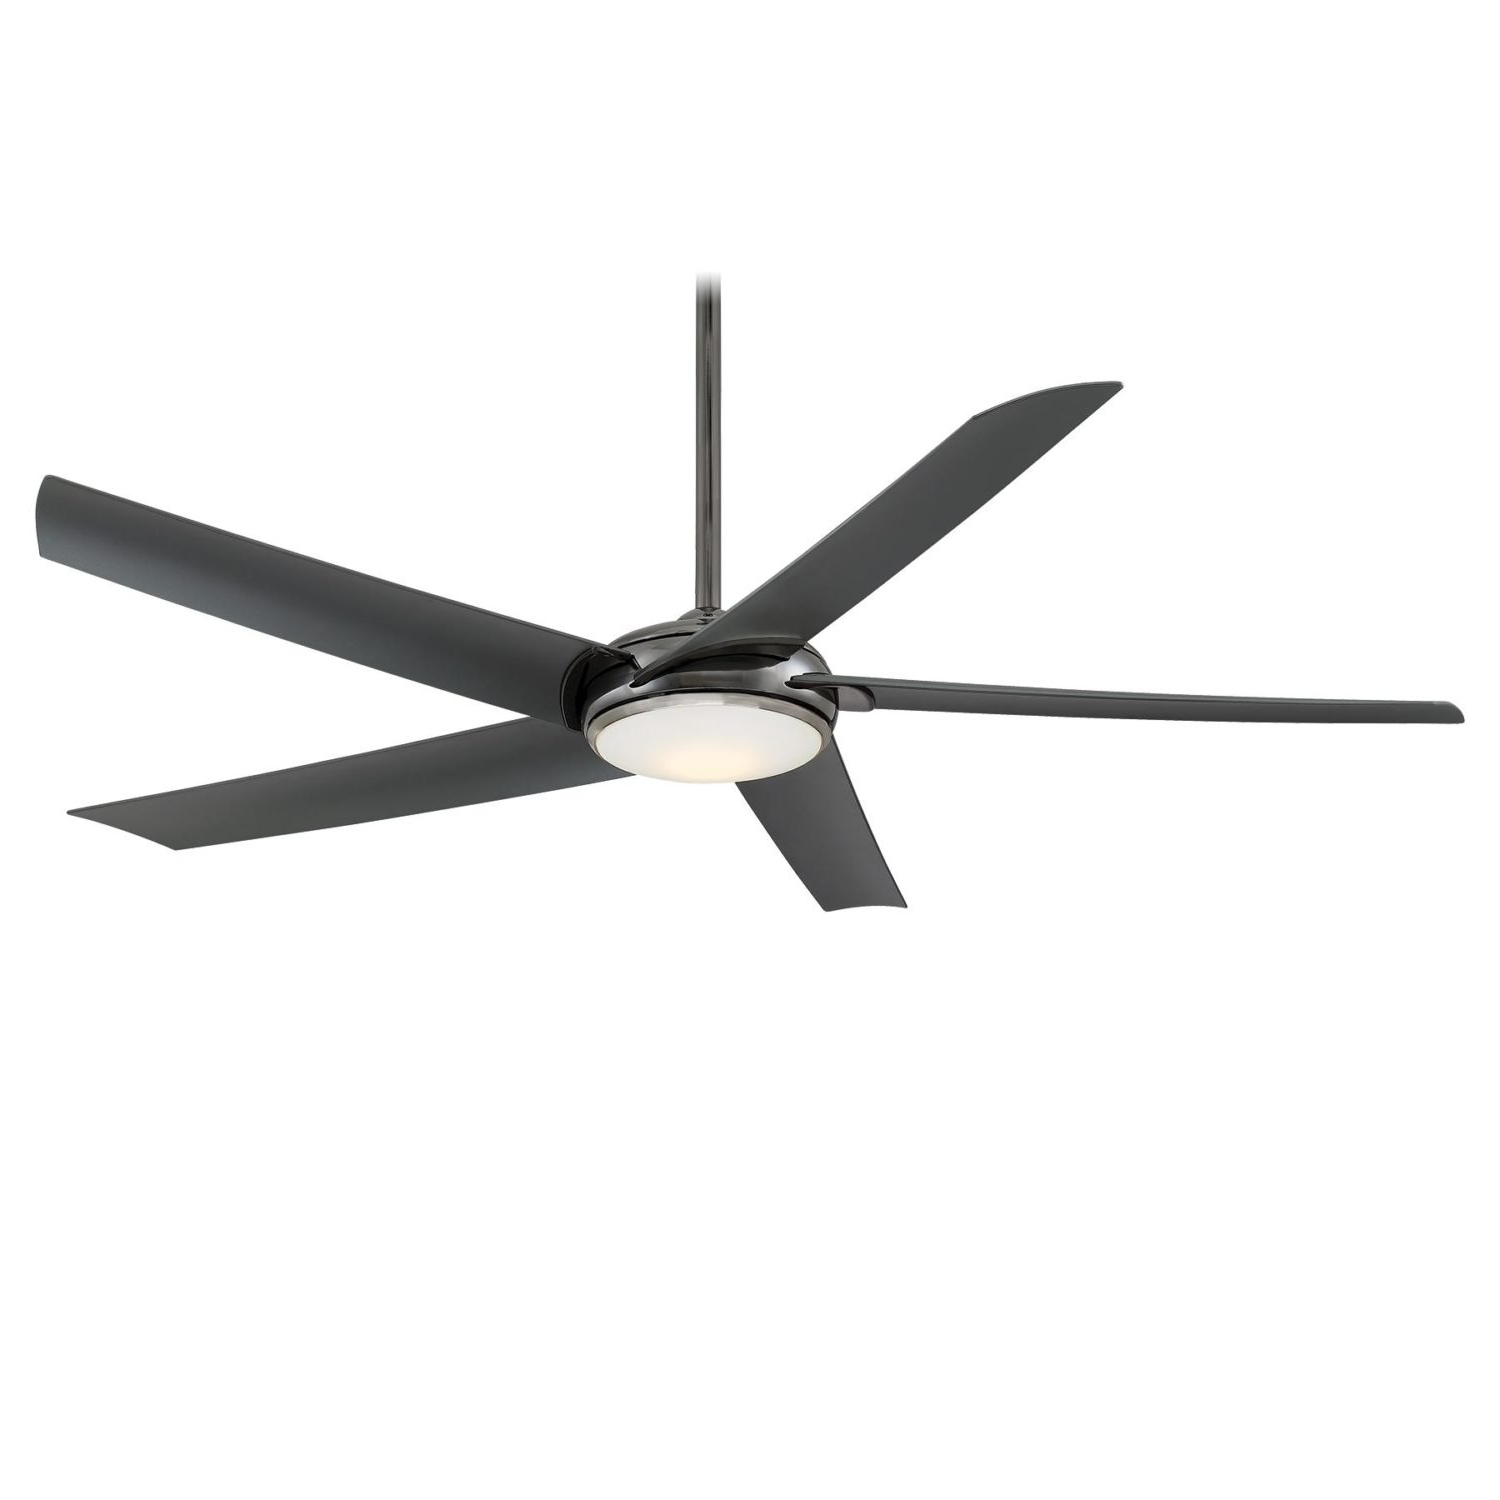 Raptor Gun Metal Ceiling Fan W/ Gun Metal Blades Regarding Widely Used Raptor 5 Blade Ceiling Fans (View 8 of 20)